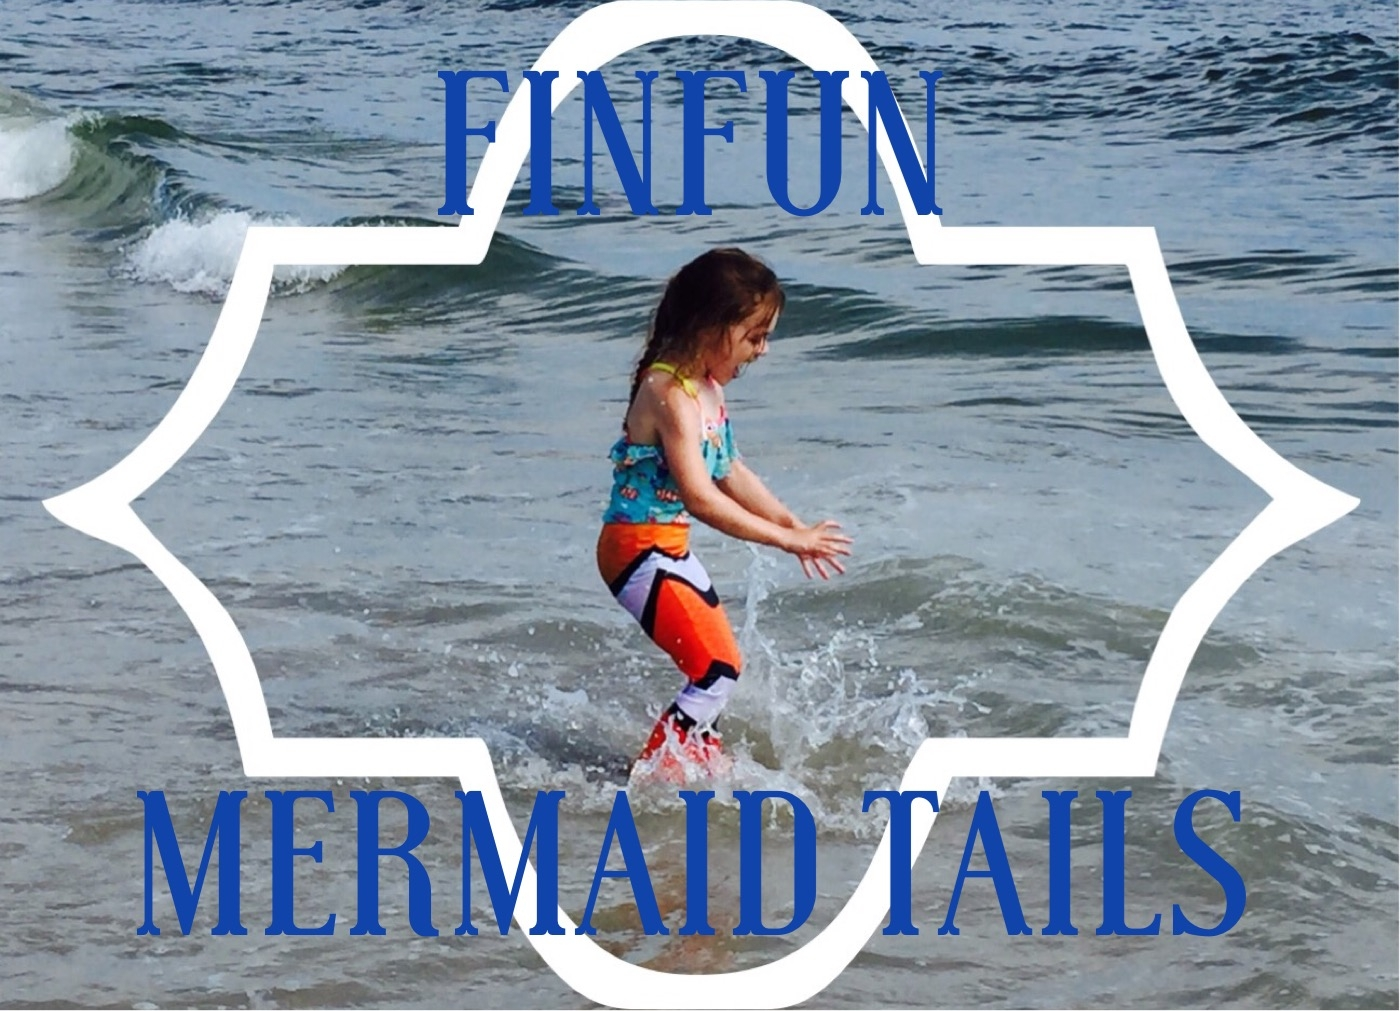 Review  Fin Fun Mermaid Tails - Apple Moms in the Hudson Valley 5b5aec84fc9f